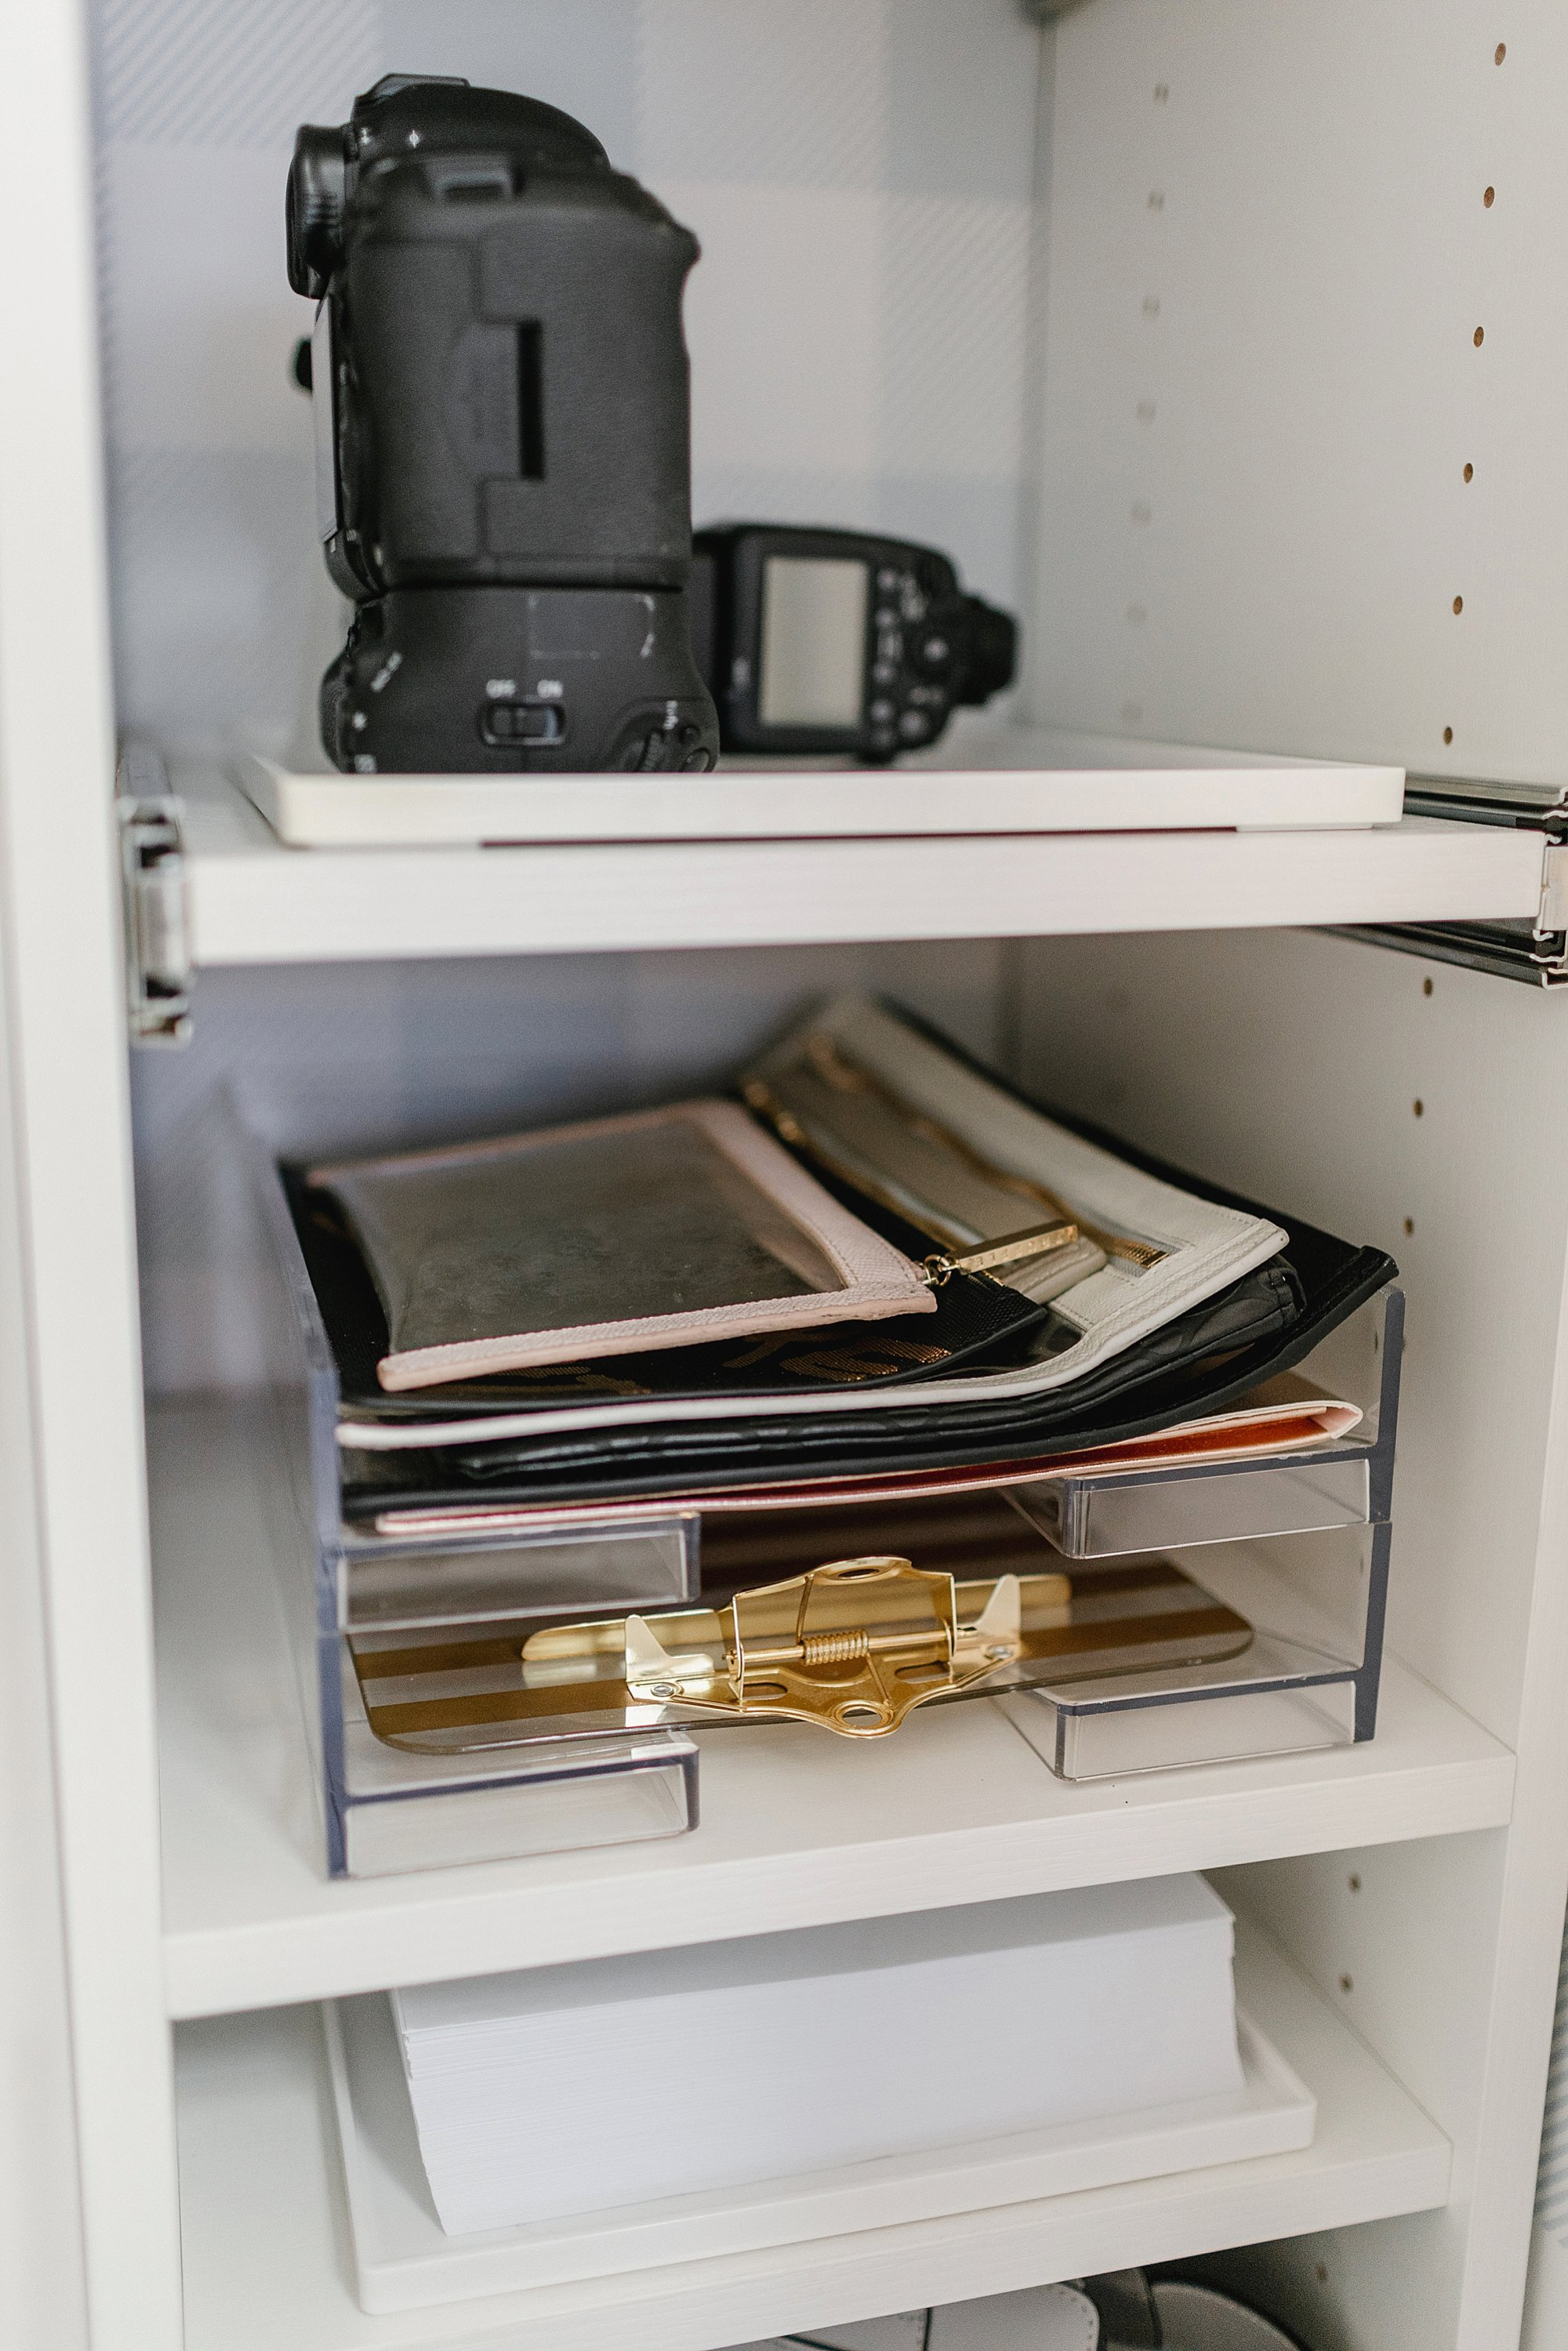 clear pouches for packing and travel: final reveal of office closet reveal belonging to photographer blogger Diana Elizabeth in phoenix arizona. created by California closets and with removable buffalo check wallpaper #office #closet #wallpaper #organization #lensorganization #lensdrawer